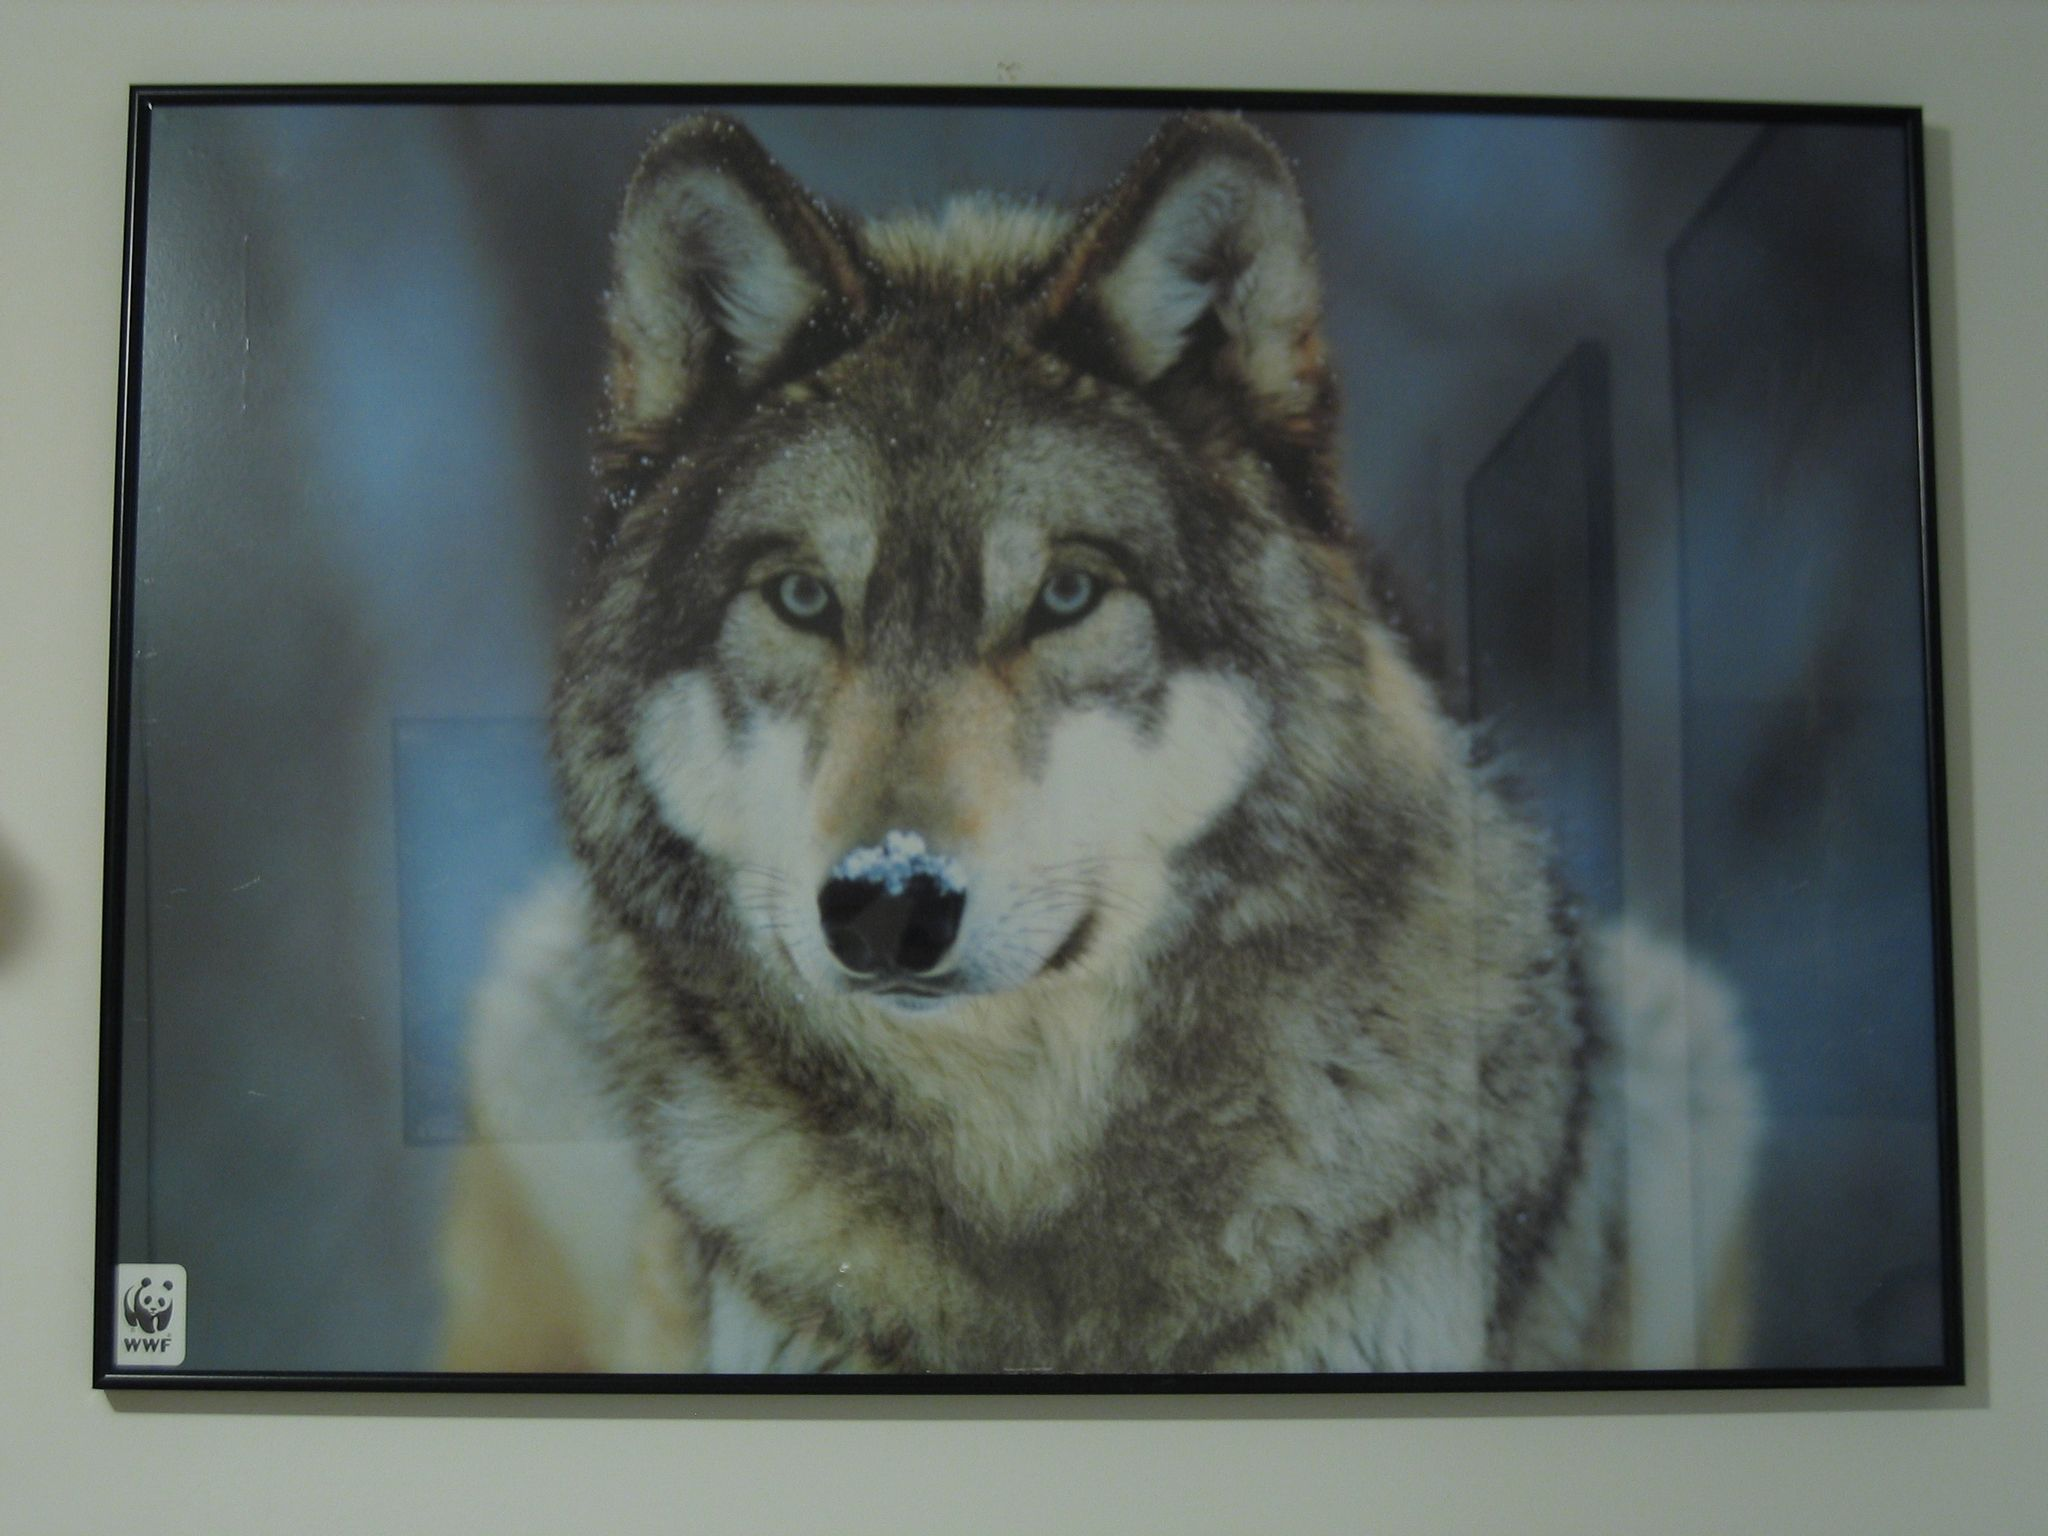 A photo of a poster of a close-up of a very fluffy wolf with a blob of snow on its nose.